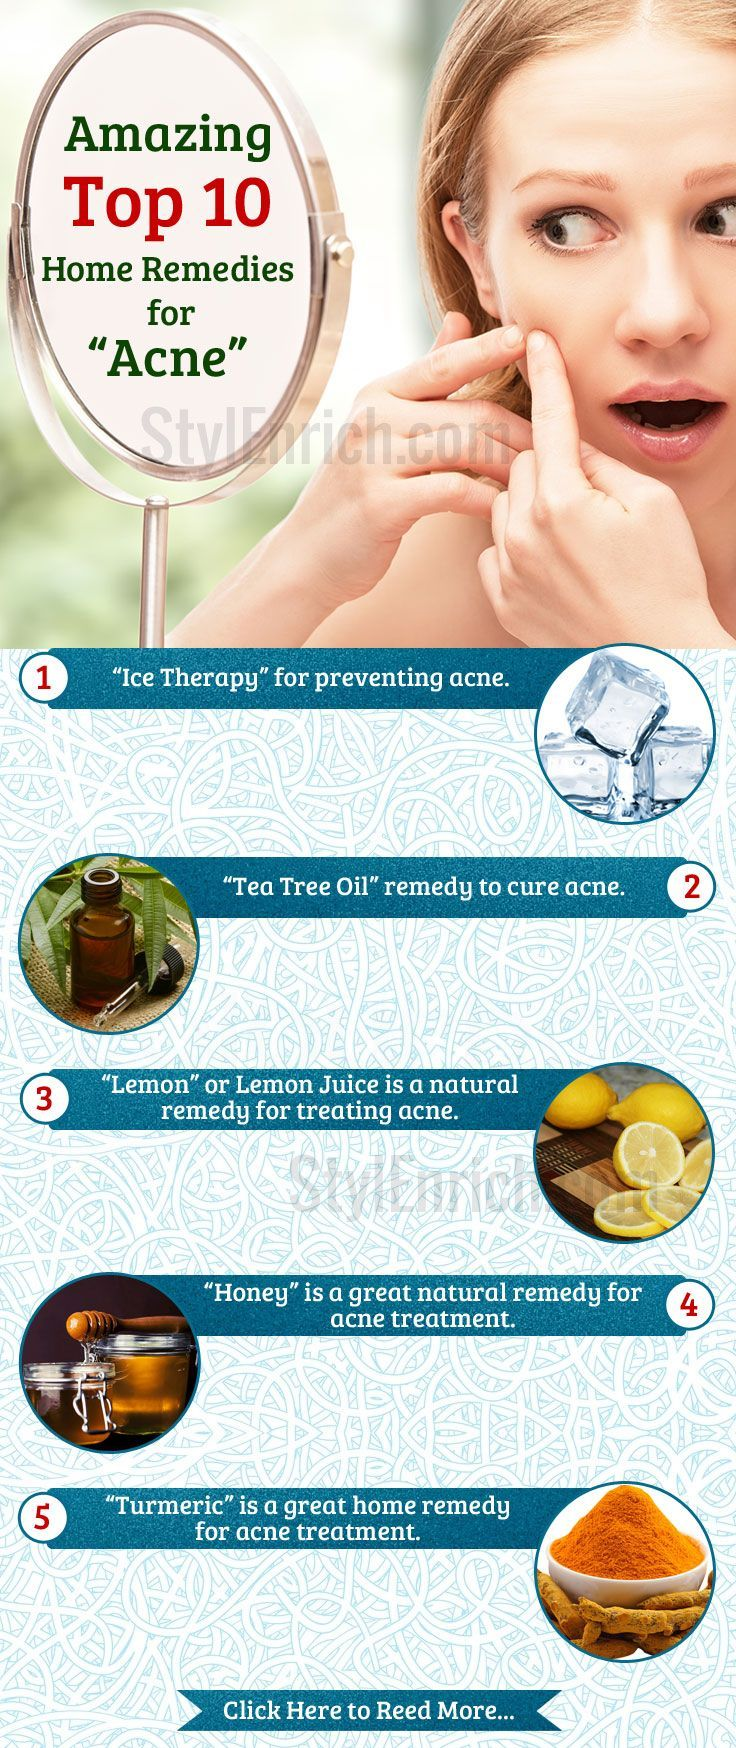 If you do not know how to get rid of acne with #HomeRemedies, we are here to suggest them for you. You will get here the best Home Remedies for Acne which are time tested and most of the times, prove their mettle. What are you then waiting for? Let us find how to diminish acne! #naturalskincare #skincareproducts #Australianskincare #AqiskinCare #australianmade